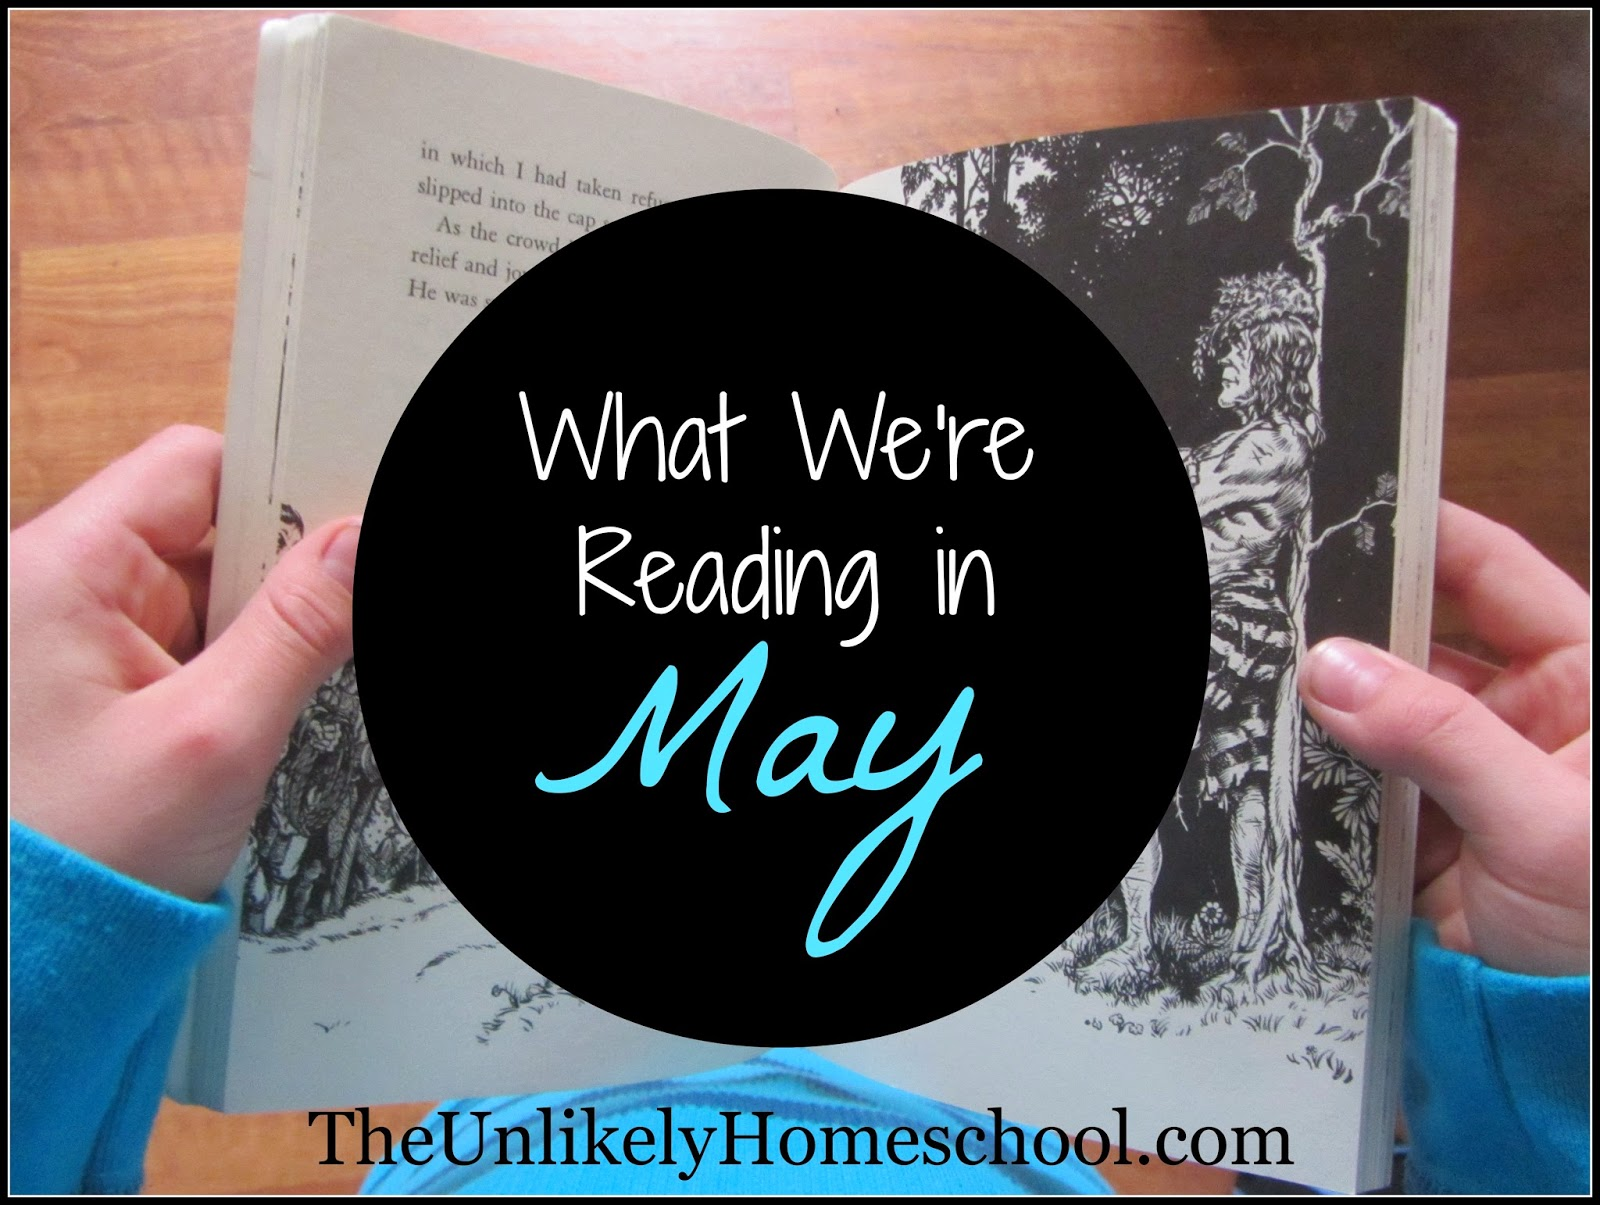 What We're Reading in May (homeschool book selections for a mom and her four reading-aged kids) The Unlikely Homeschool